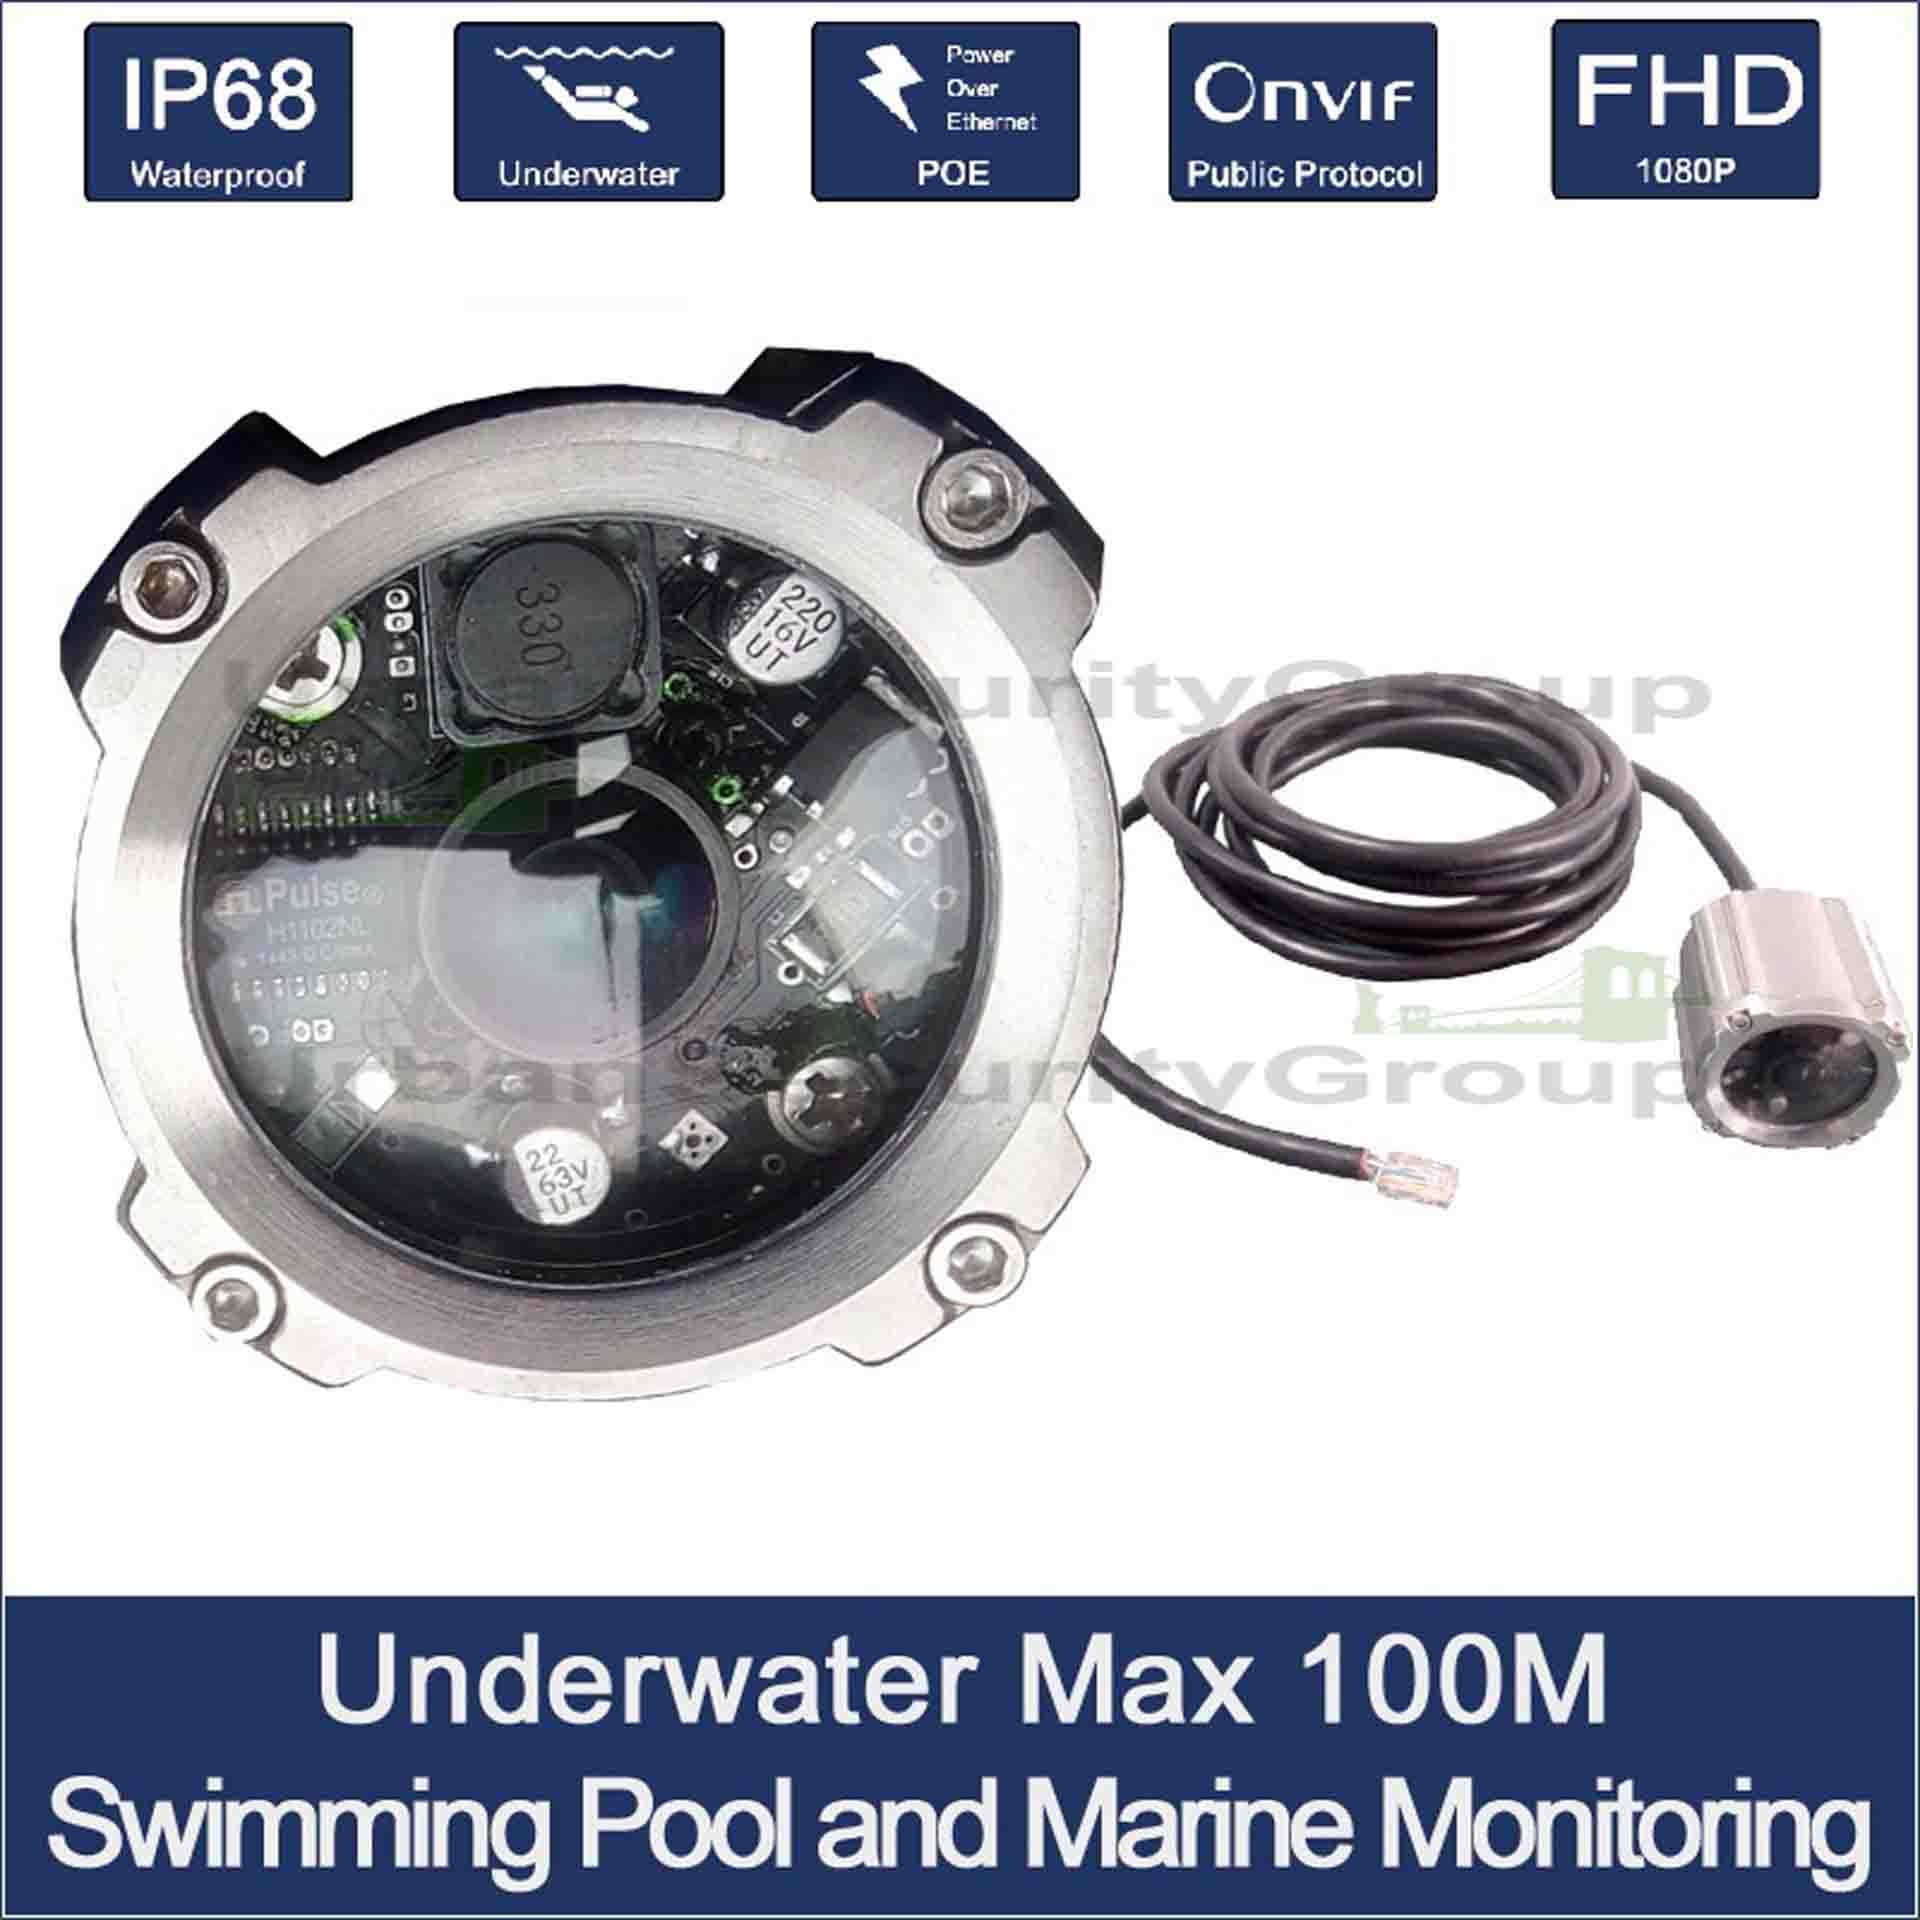 IP PoE 2MP 1080P Underwater Security Camera : 1.2mm 150°, Power Over Ethernet : 80m 260ft Water Depth : 30m 98ft Waterproof Network Cable : IP68 : Stainless Steel 316L : Toughened Safety Glass (ESG)